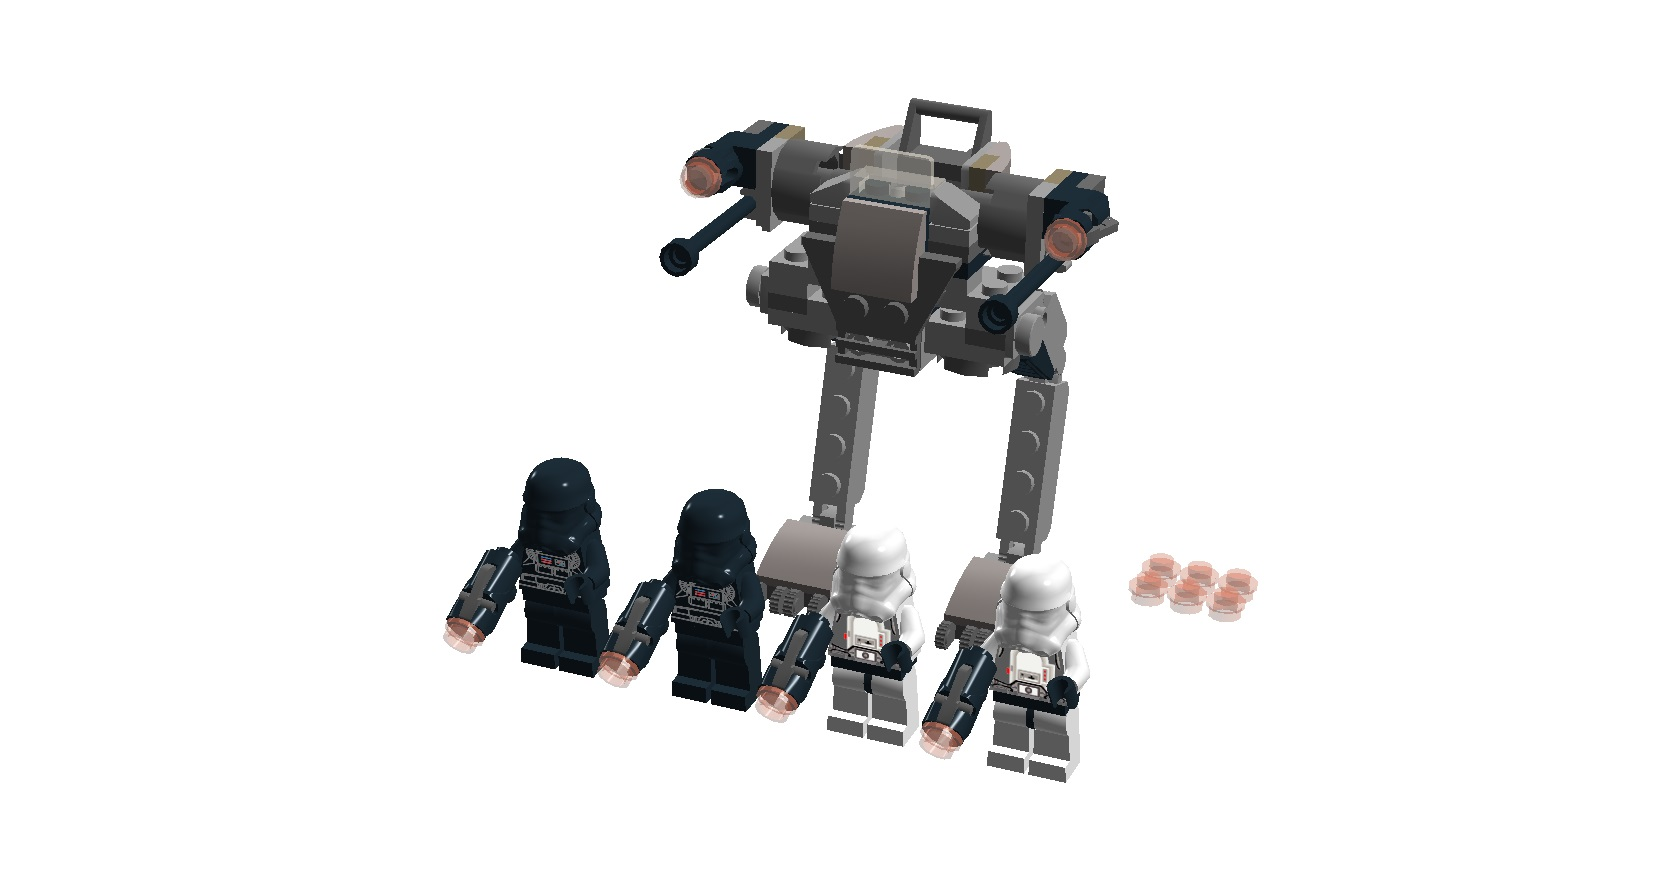 75165_imperial_trooper_battle_pack.jpg